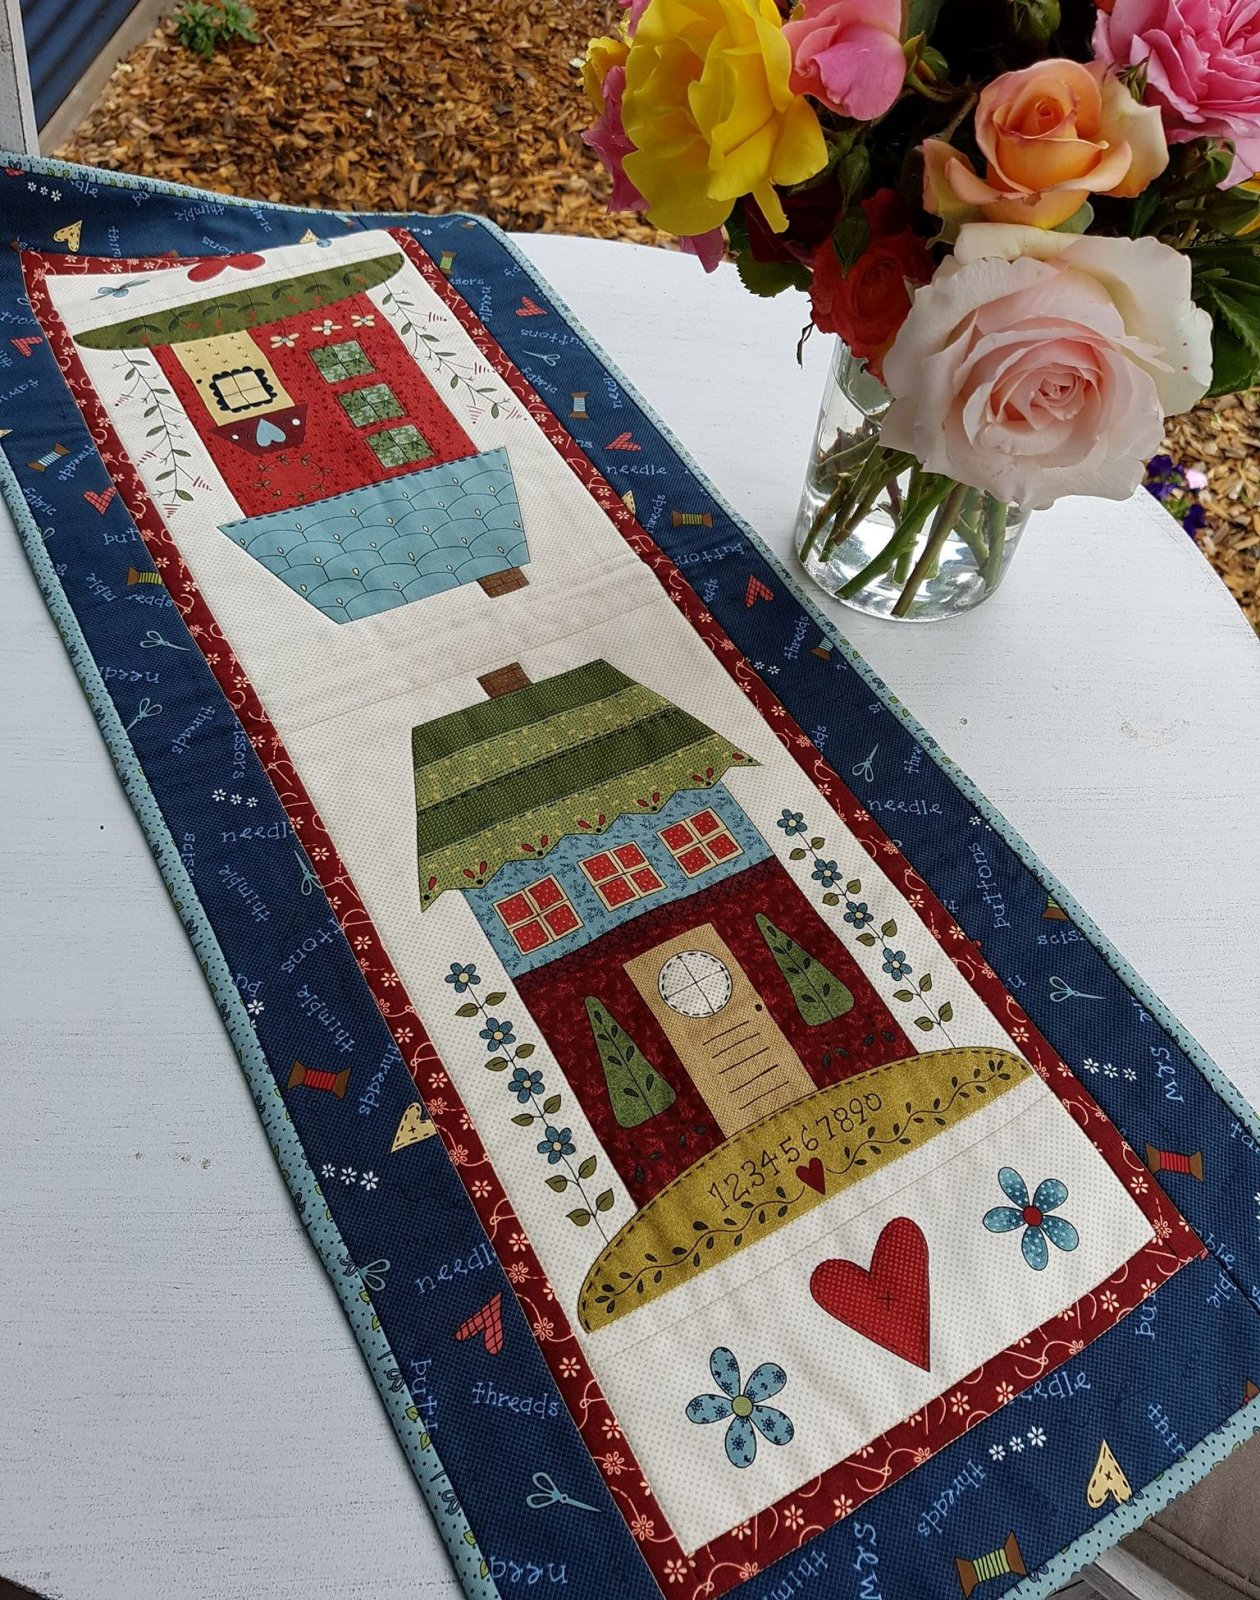 'Take me home' table runner kit